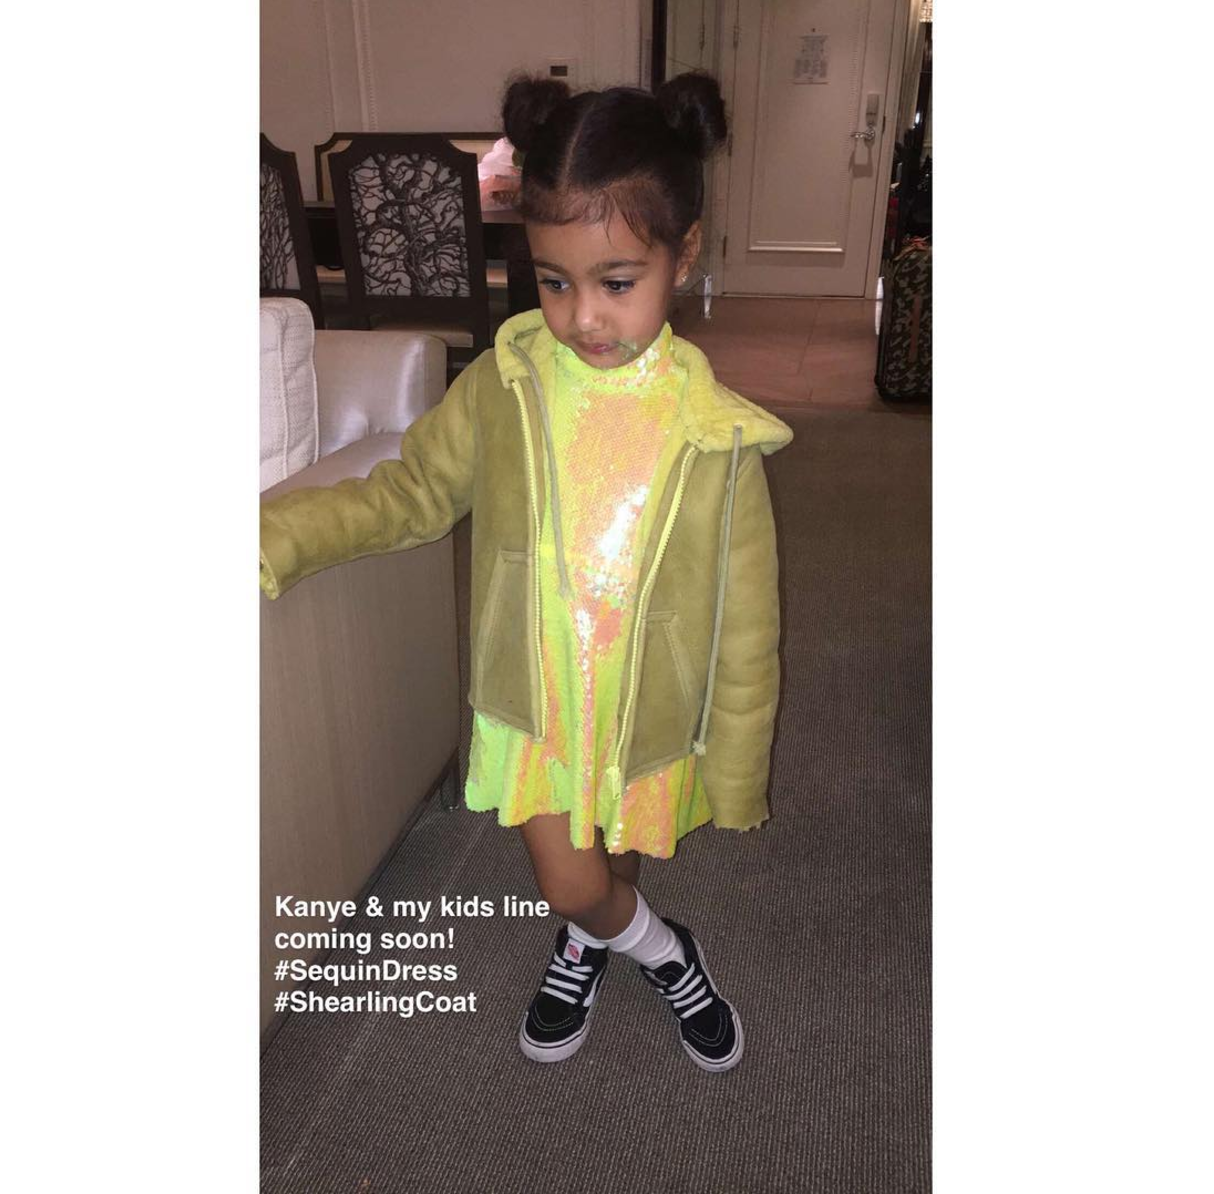 Kanye West And Kim Kardashian West Will Be Releasing A Kids Clothing Line